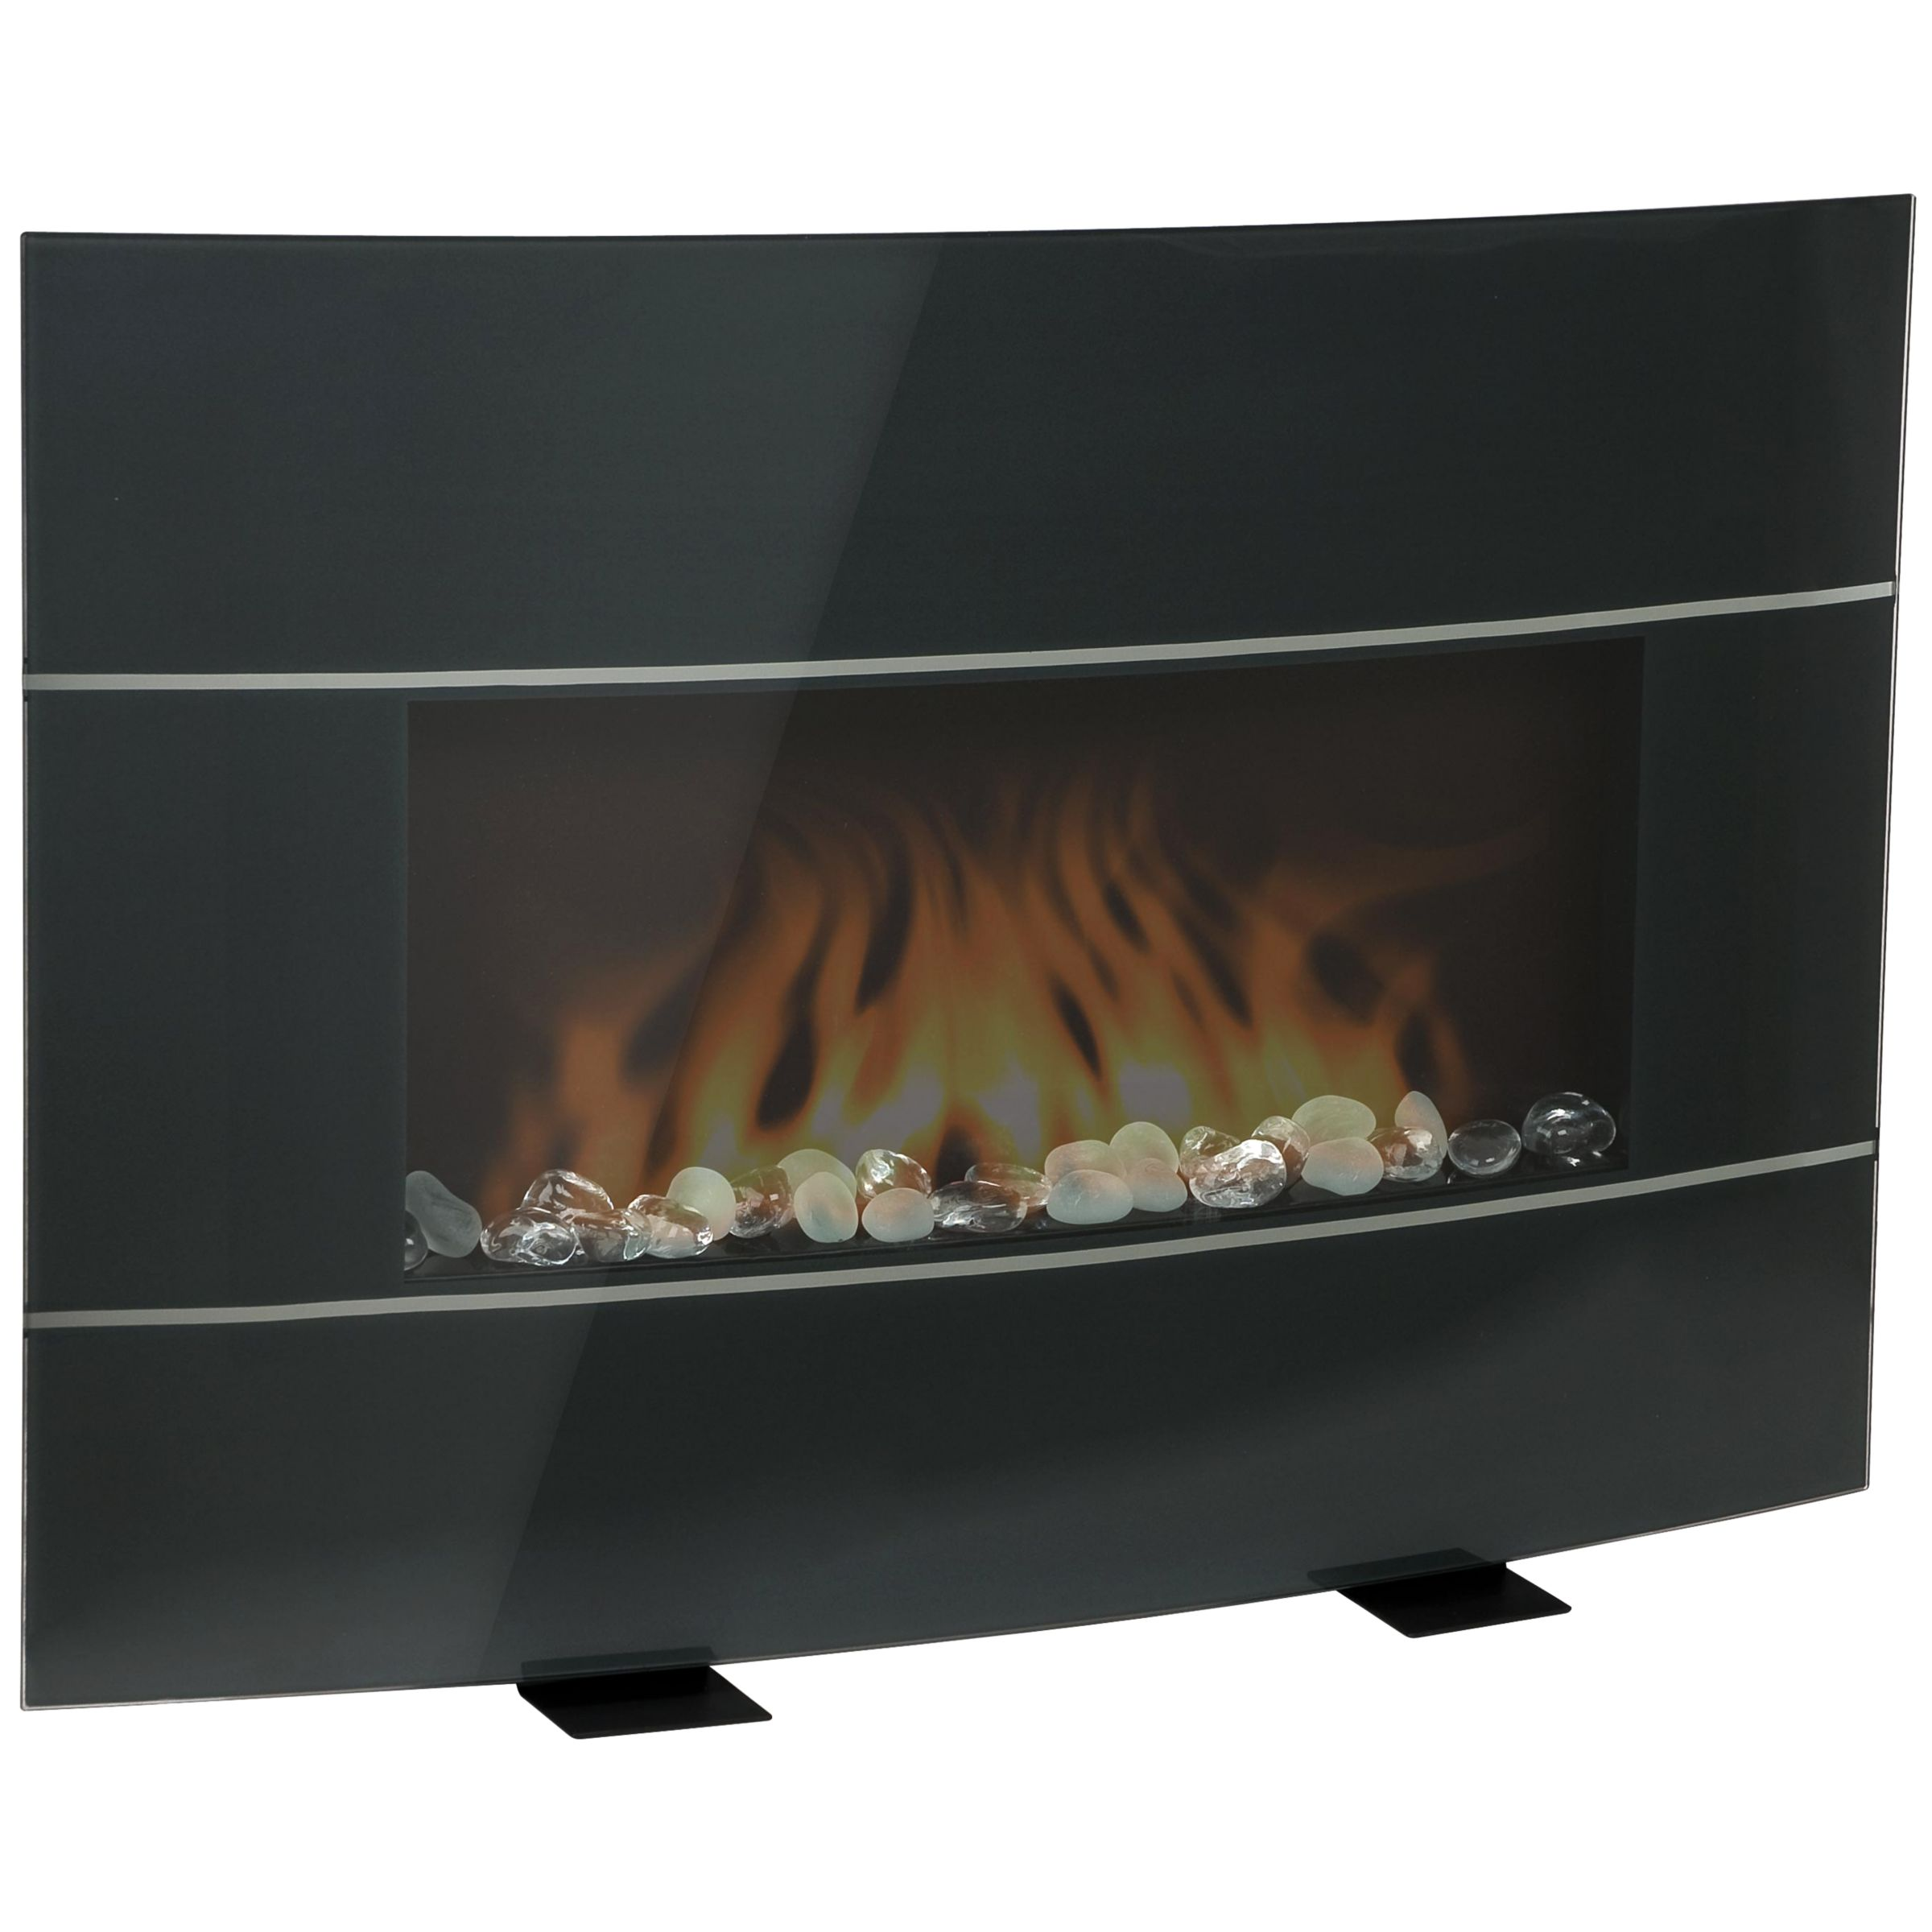 Bionaire BEF6500-IUK Electric Fireplace, Black